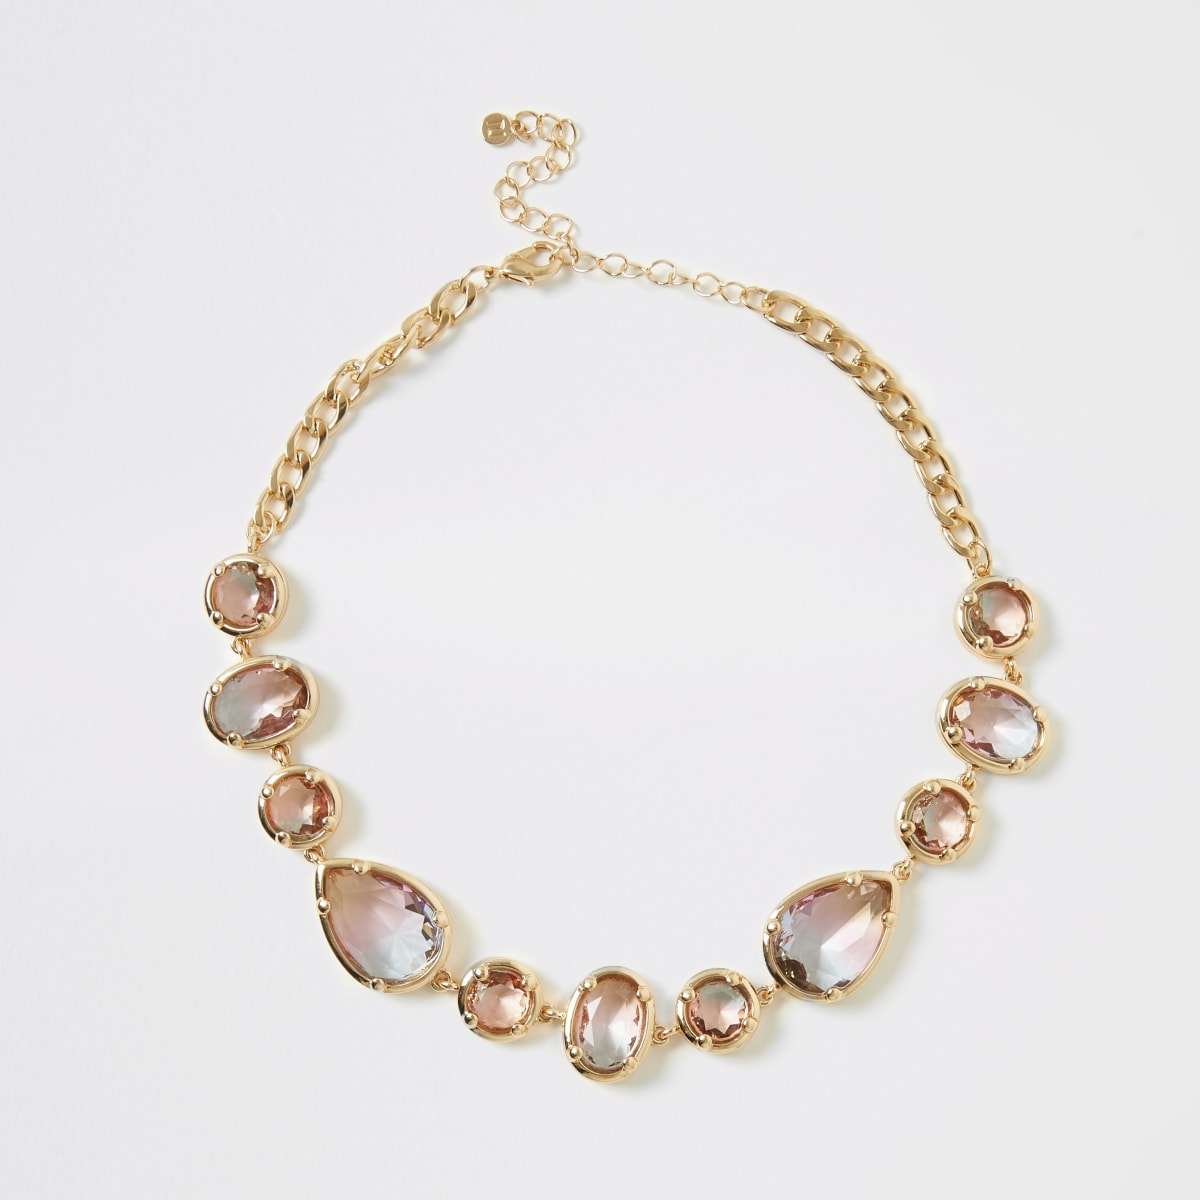 Collier orné de pierres fantaisies en dégradé rose